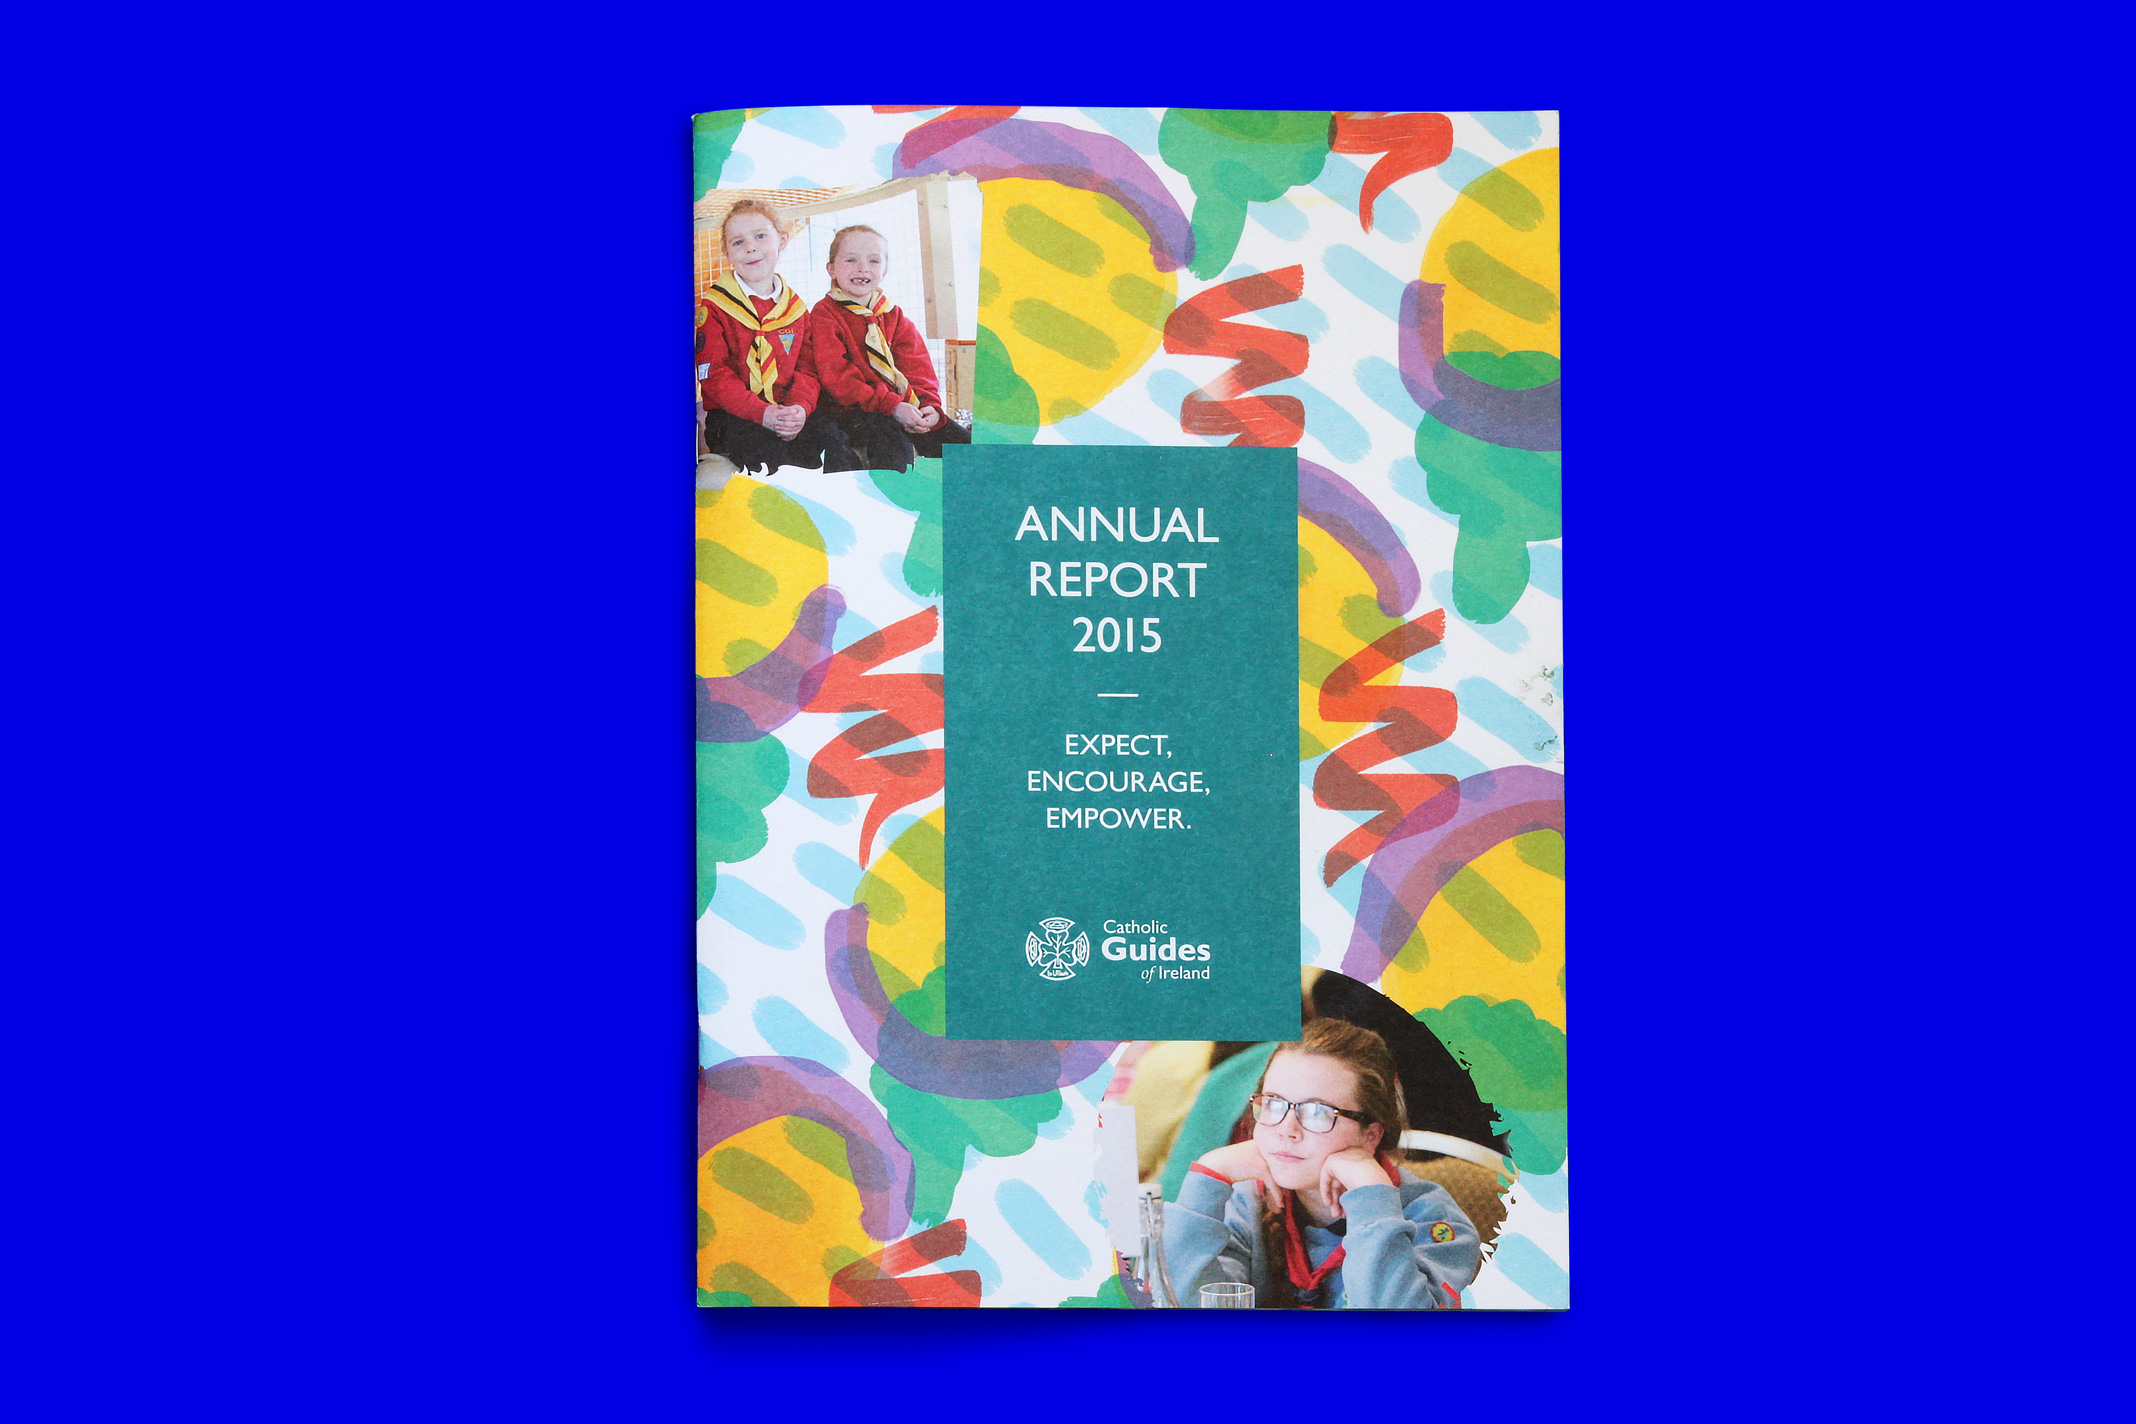 CGI-Annual-Report-2015-cover2.jpg